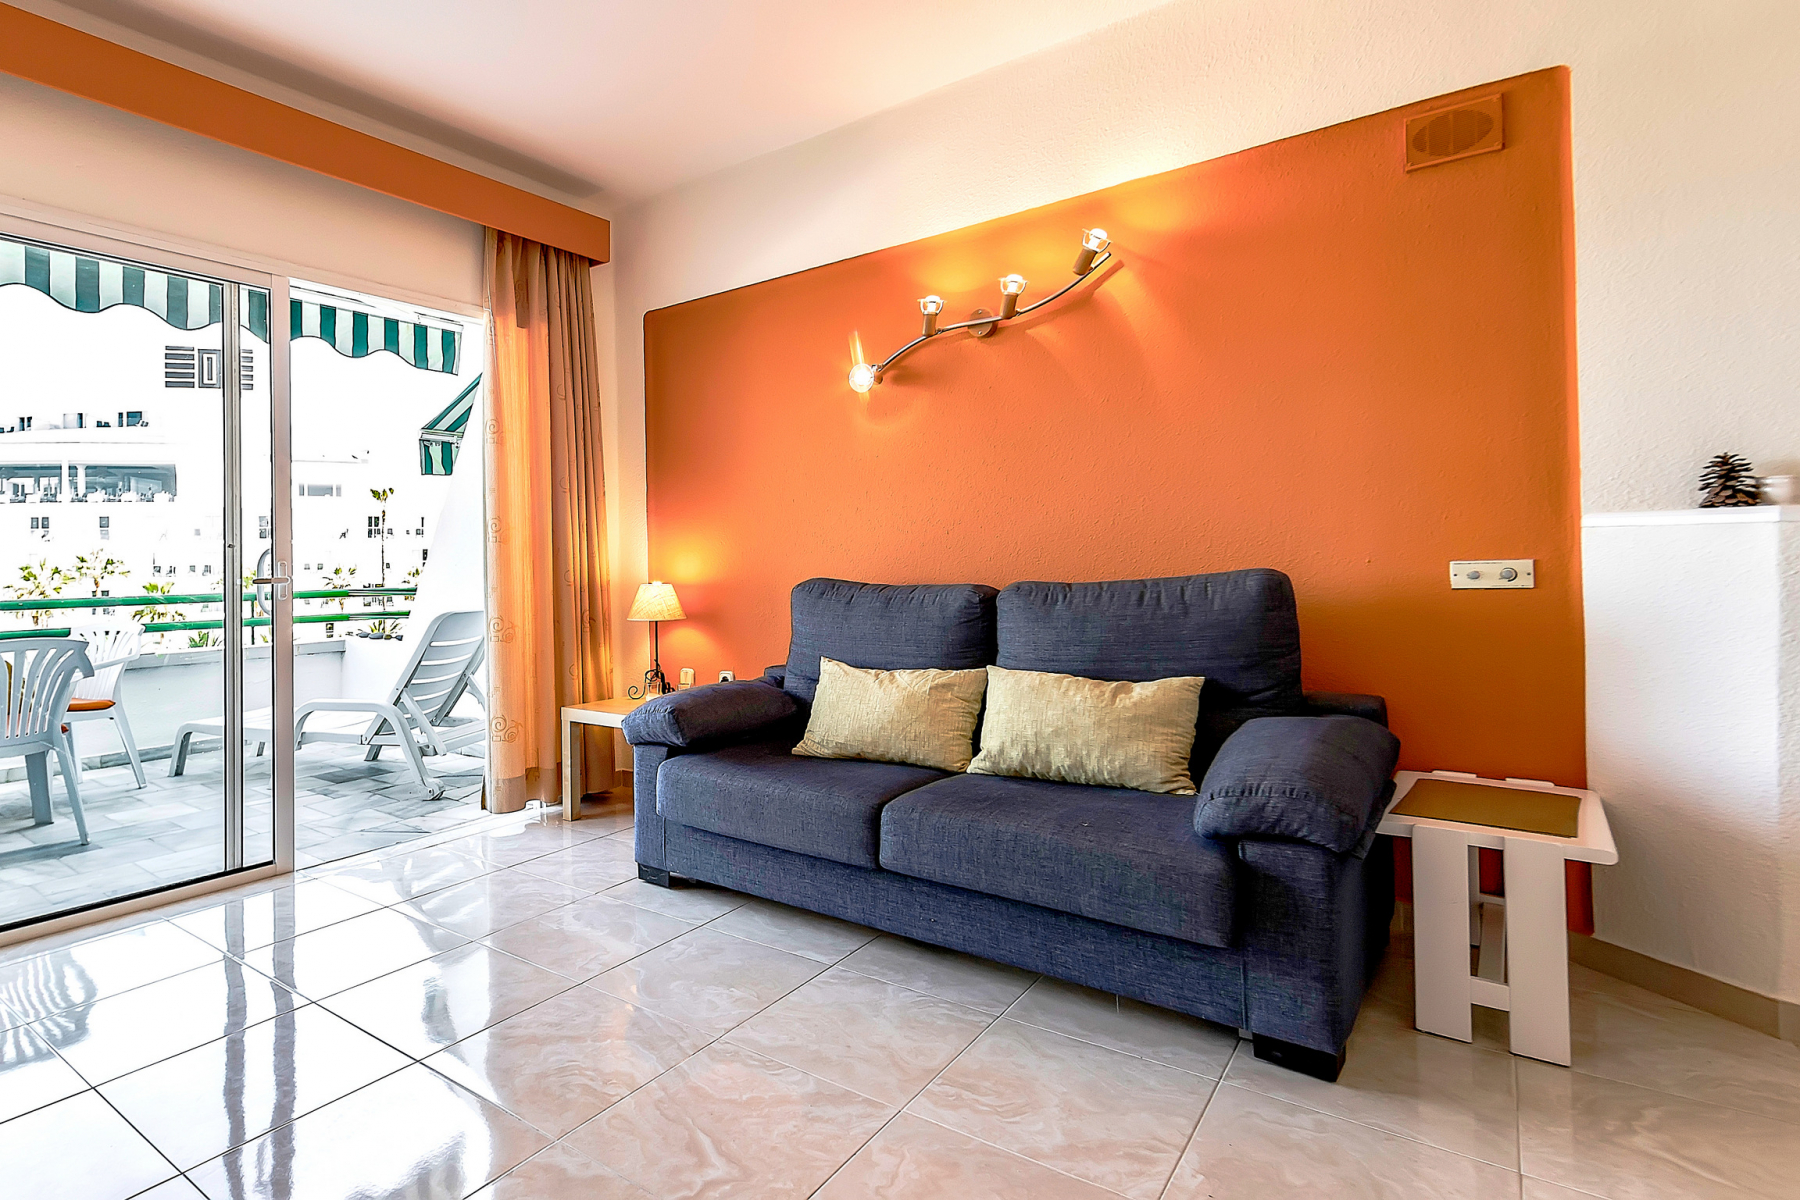 Properties for Sale in Tenerife, Canary Islands, Spain | SylkWayStar Real Estate. Lovely 1 Bedroom Apartment - Altamira. Image-25829